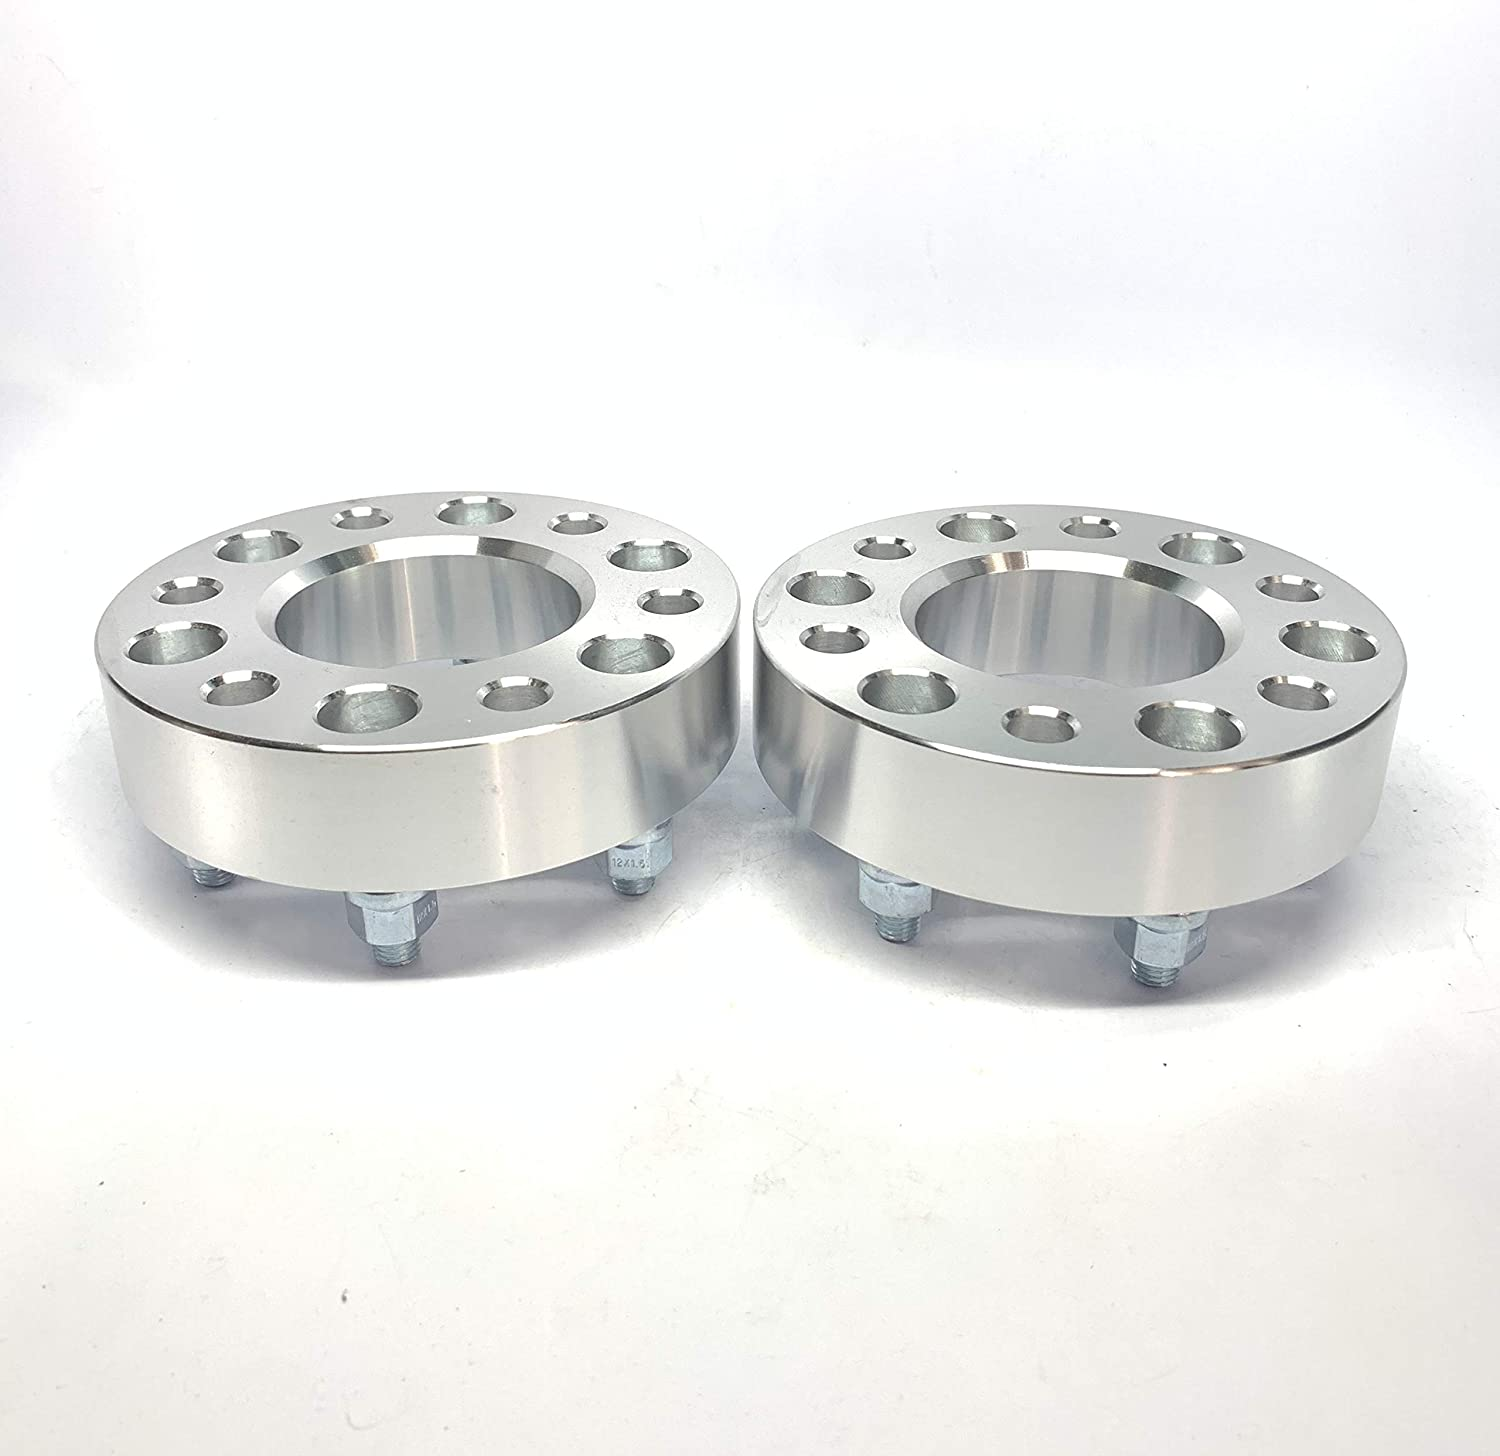 Customadeonly 2 Pieces 1.5 38mm Hub Centric Wheel Spacers with Lip Bolt Pattern 6x5 6x127 Fits Chevy Envoy Trailblazer SSR